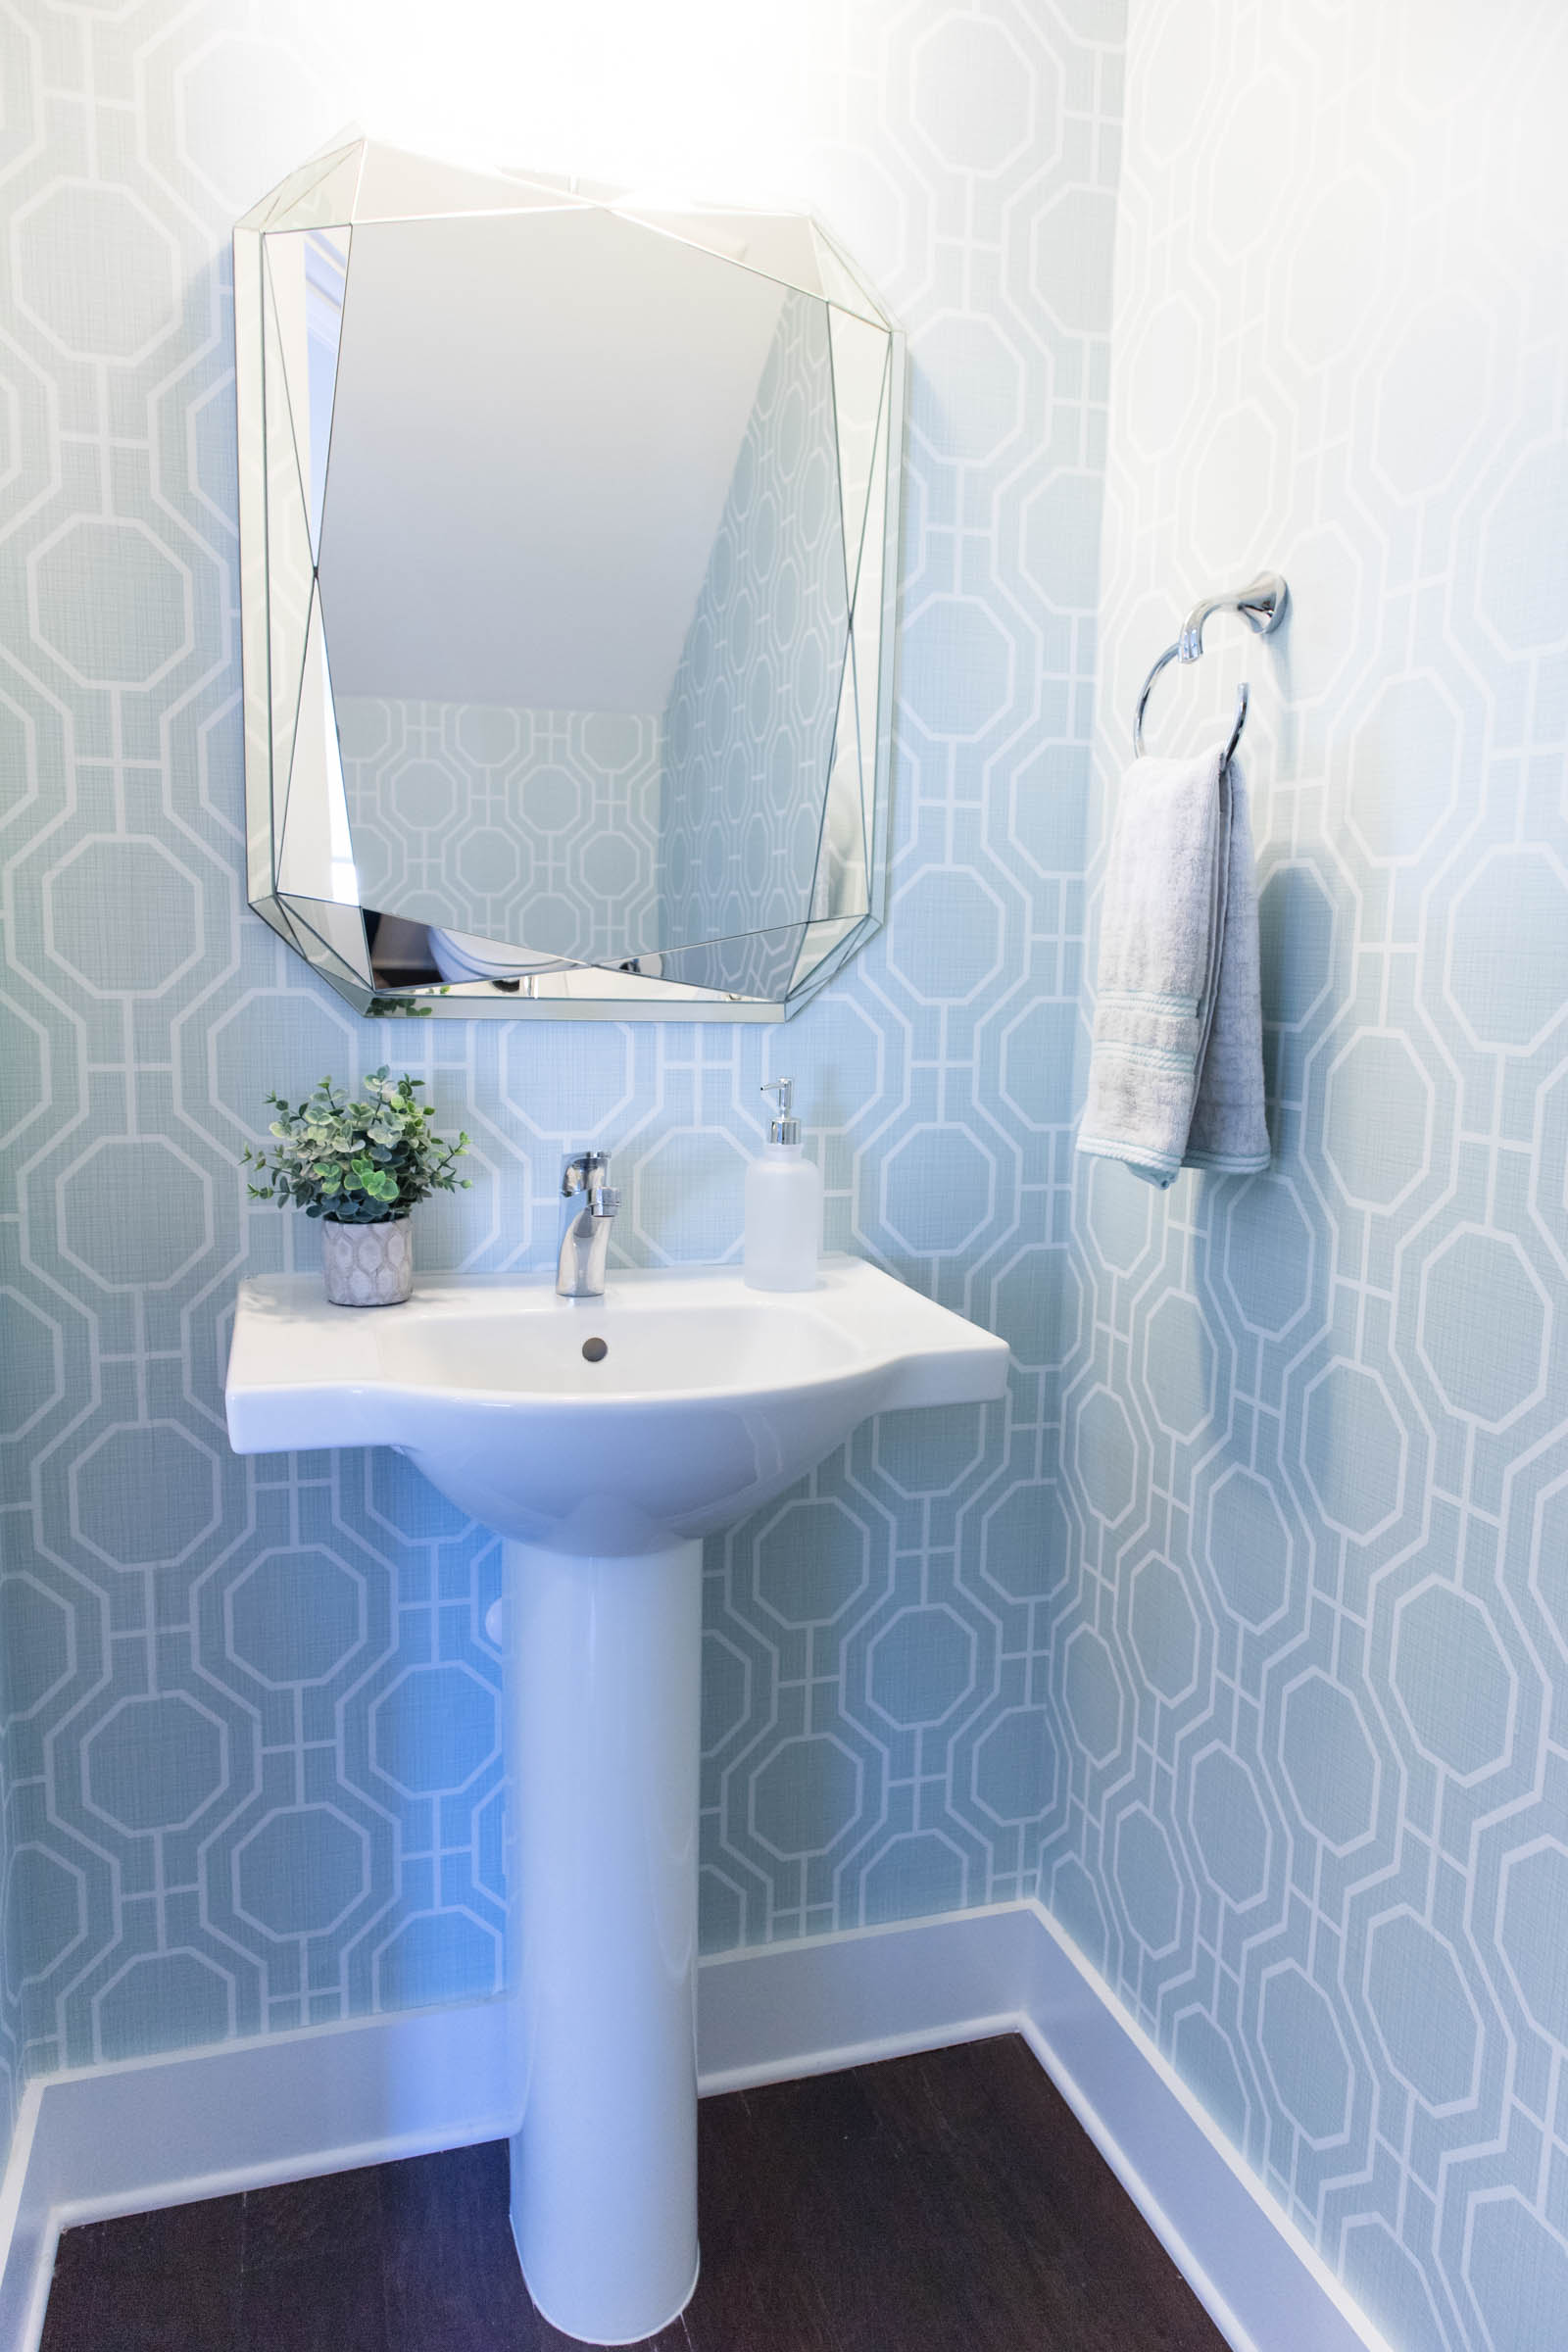 Powder Room Home Tour Medicine & Manicures